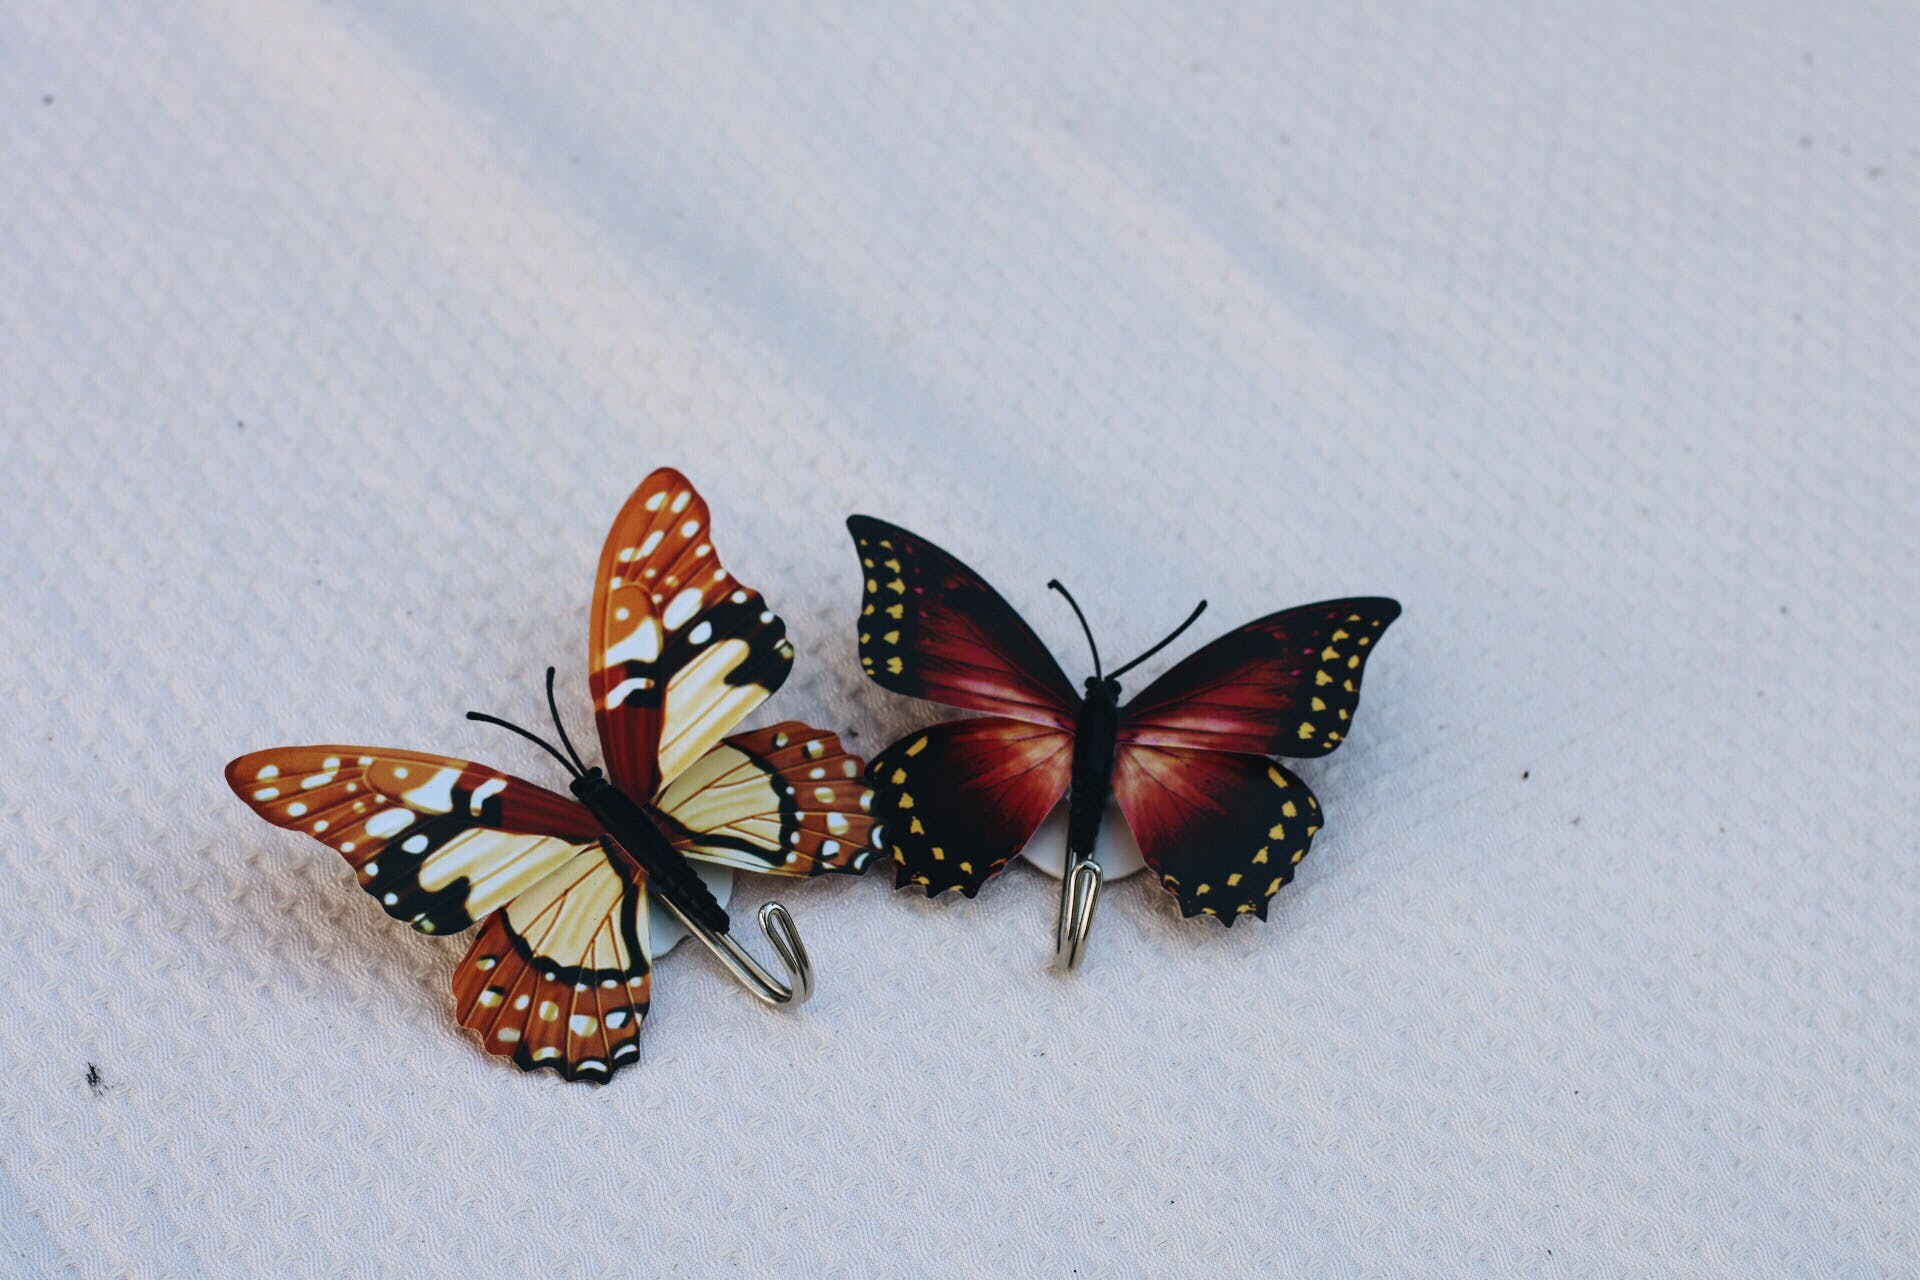 Brown and Black Butterfly Shower Curtain Hooks on White Linen